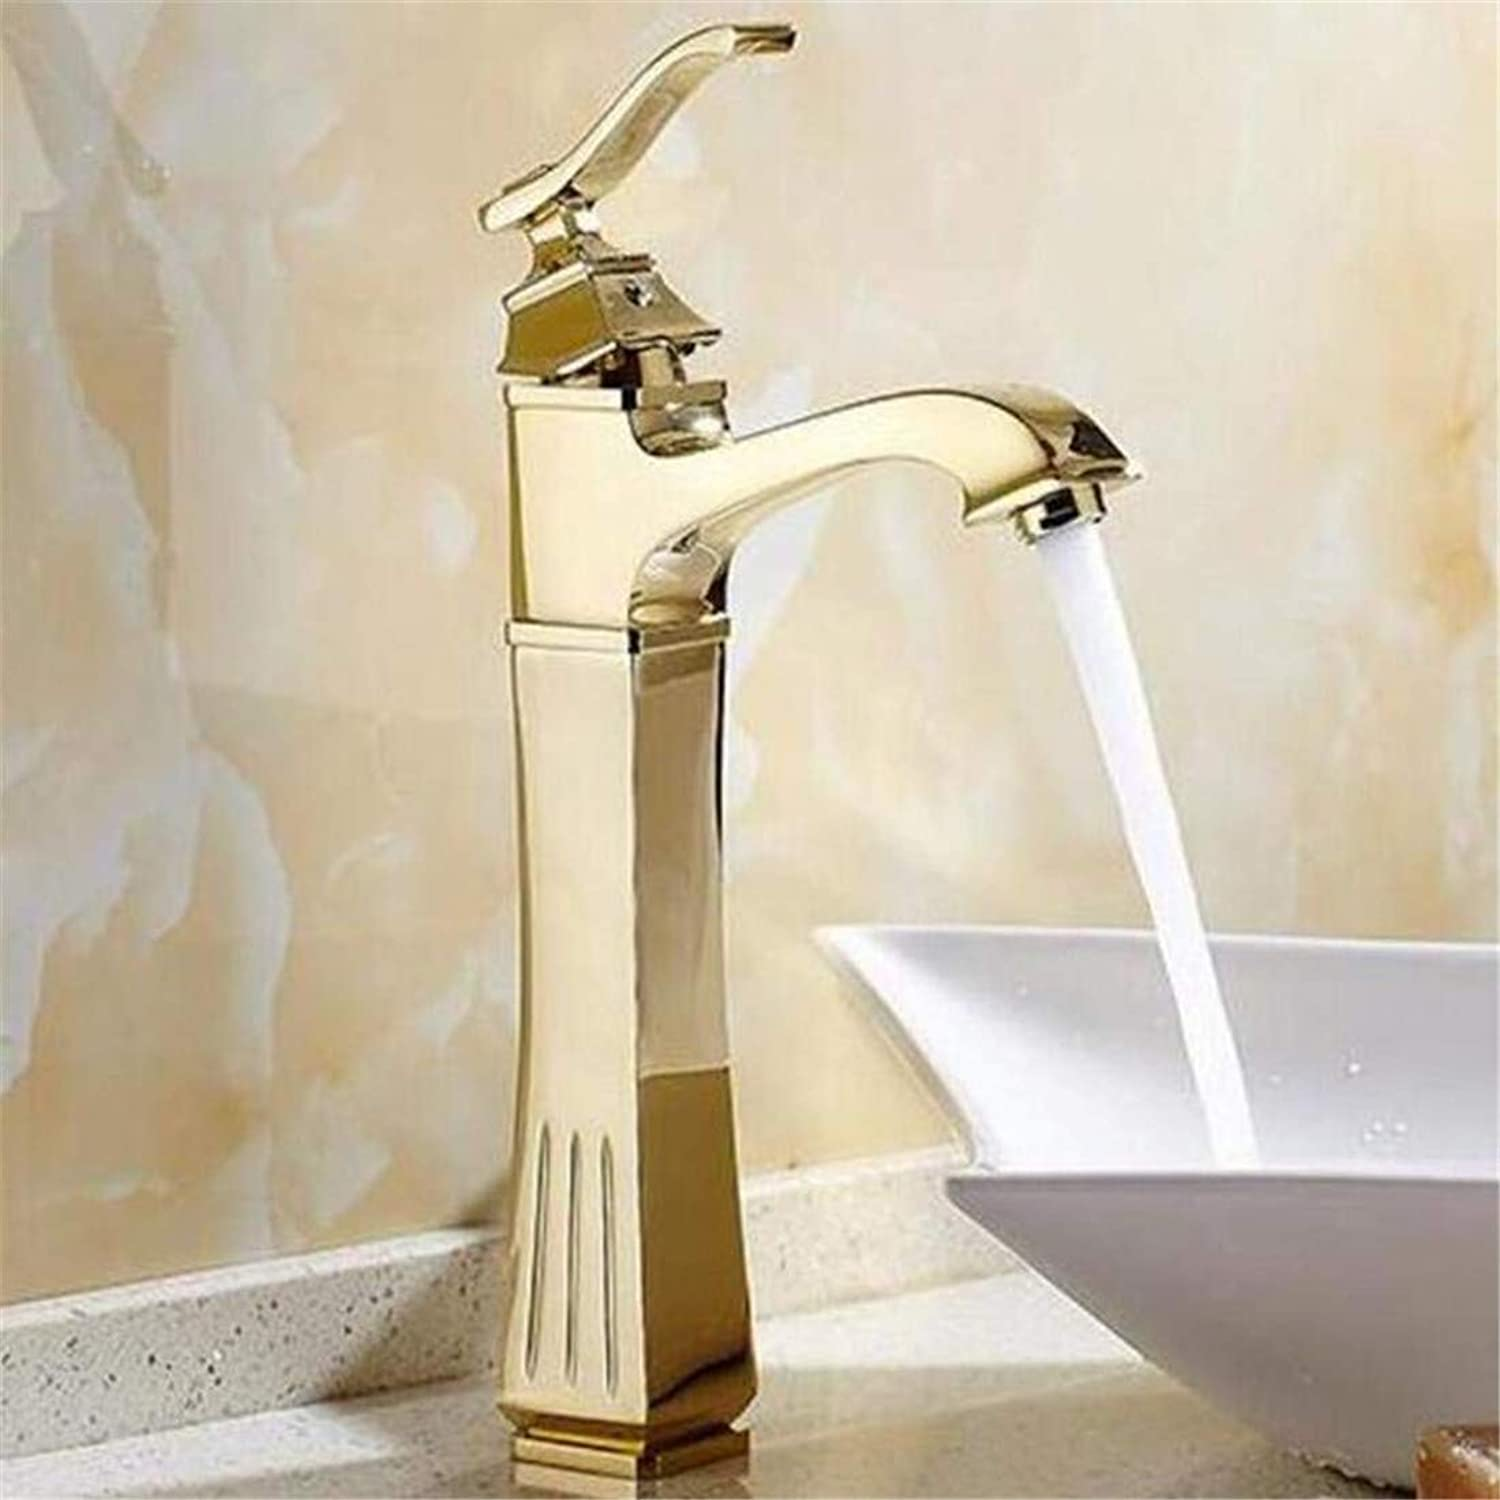 Faucet Vintage Plated Kitchen Bathroom Faucet Oil Bubed Bronze Bathroom Single Handle Basin Faucet Hot&Cold Mixer Tap Bathrom Washbasin Carved Faucet